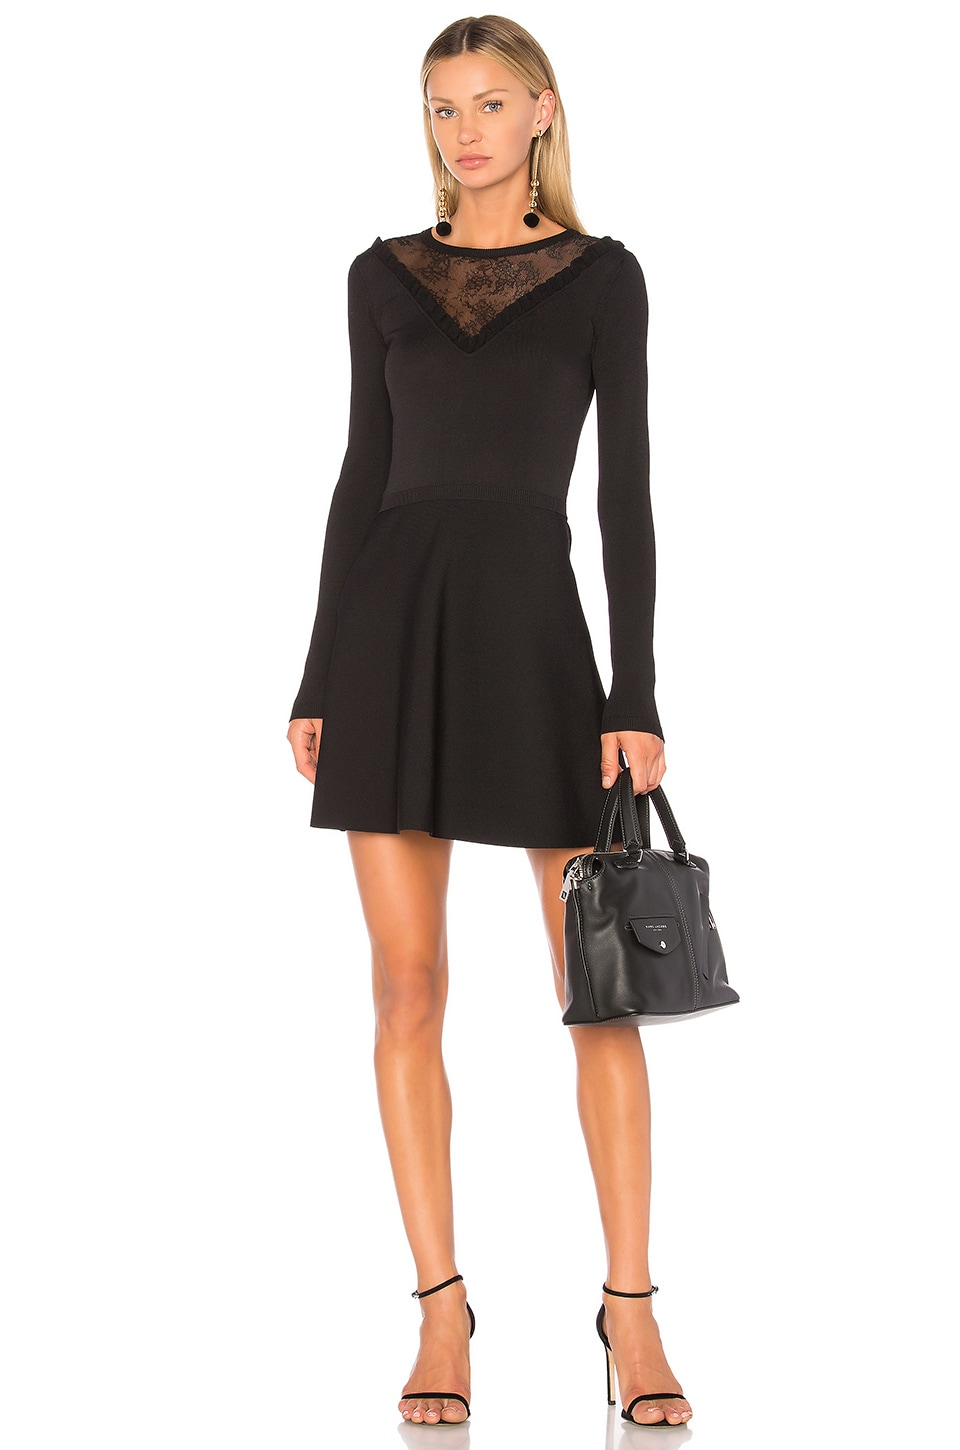 Lace Insert Mini Dress by Red Valentino